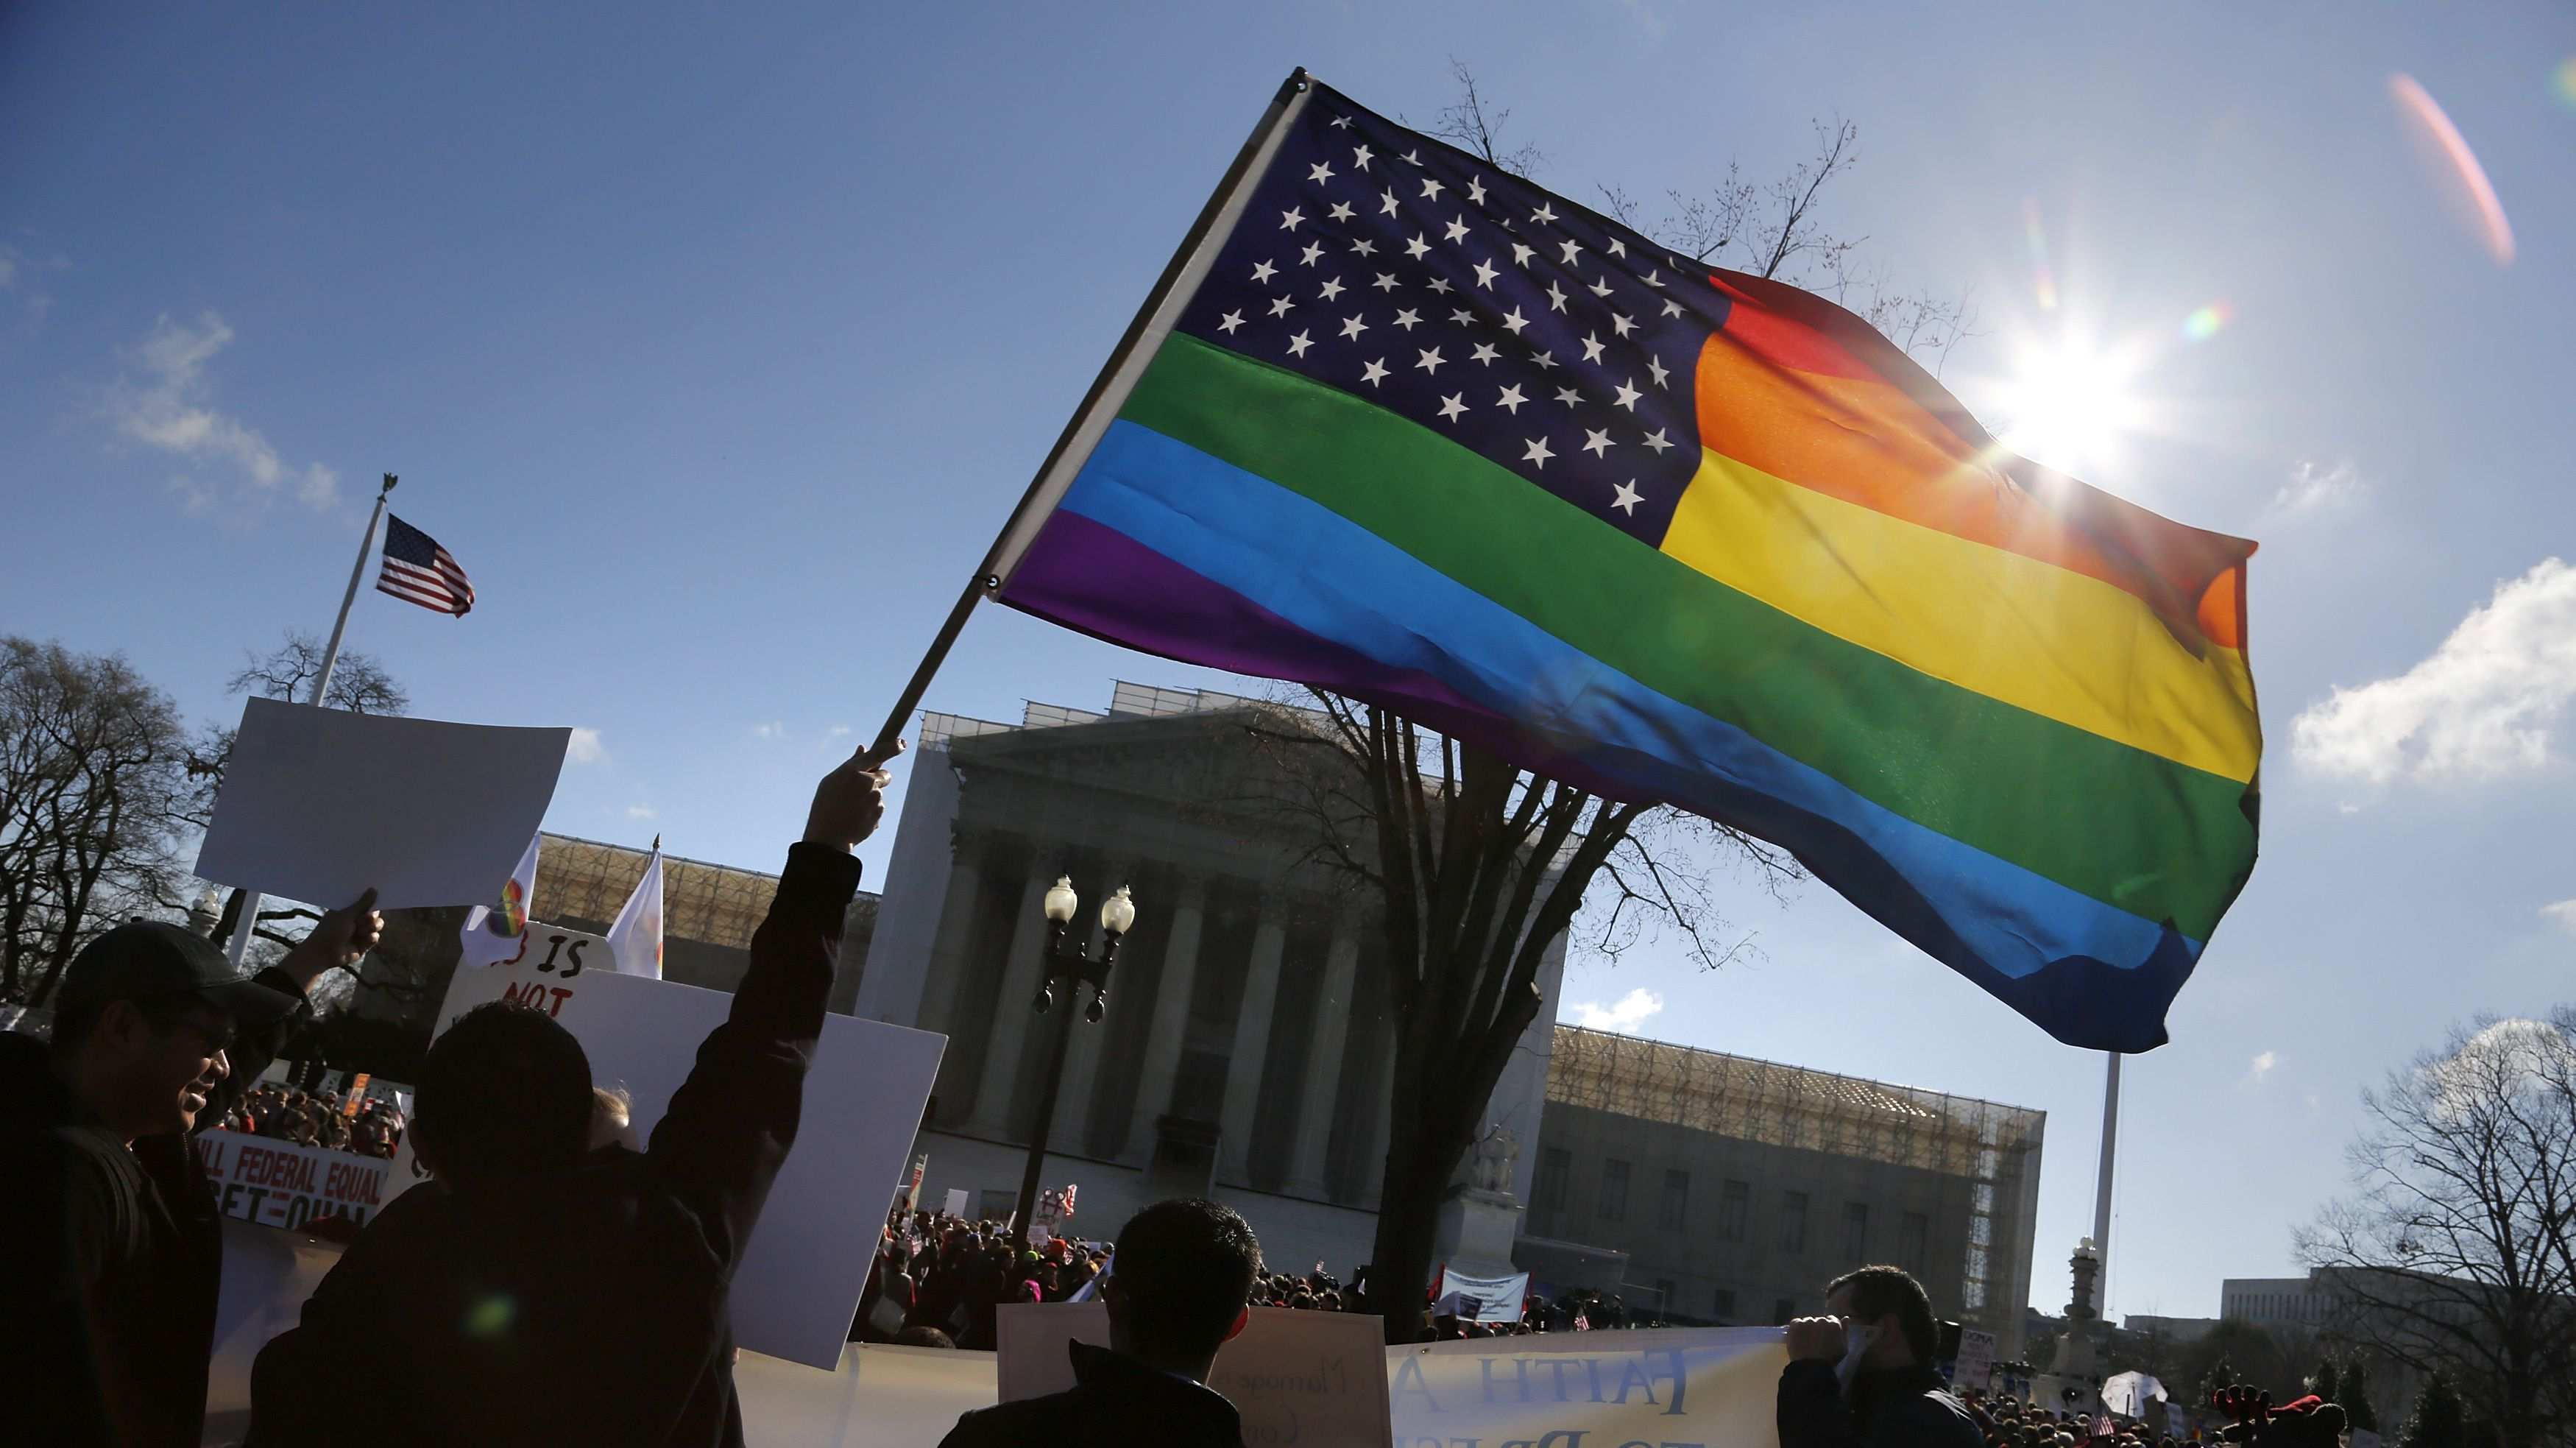 Anti-Proposition 8 protesters wave a rainbow flag in front of the U.S. Supreme Court in Washington, March 26, 2013. Two members of the U.S. Supreme Court, both viewed as potential swing votes on the right of gay couples to marry, raised doubts about California's gay marriage ban on Tuesday as they questioned a lawyer defending the ban. REUTERS/Jonathan Ernst (UNITED STATES - Tags: POLITICS SOCIETY CIVIL UNREST TPX IMAGES OF THE DAY) - RTXXY6A